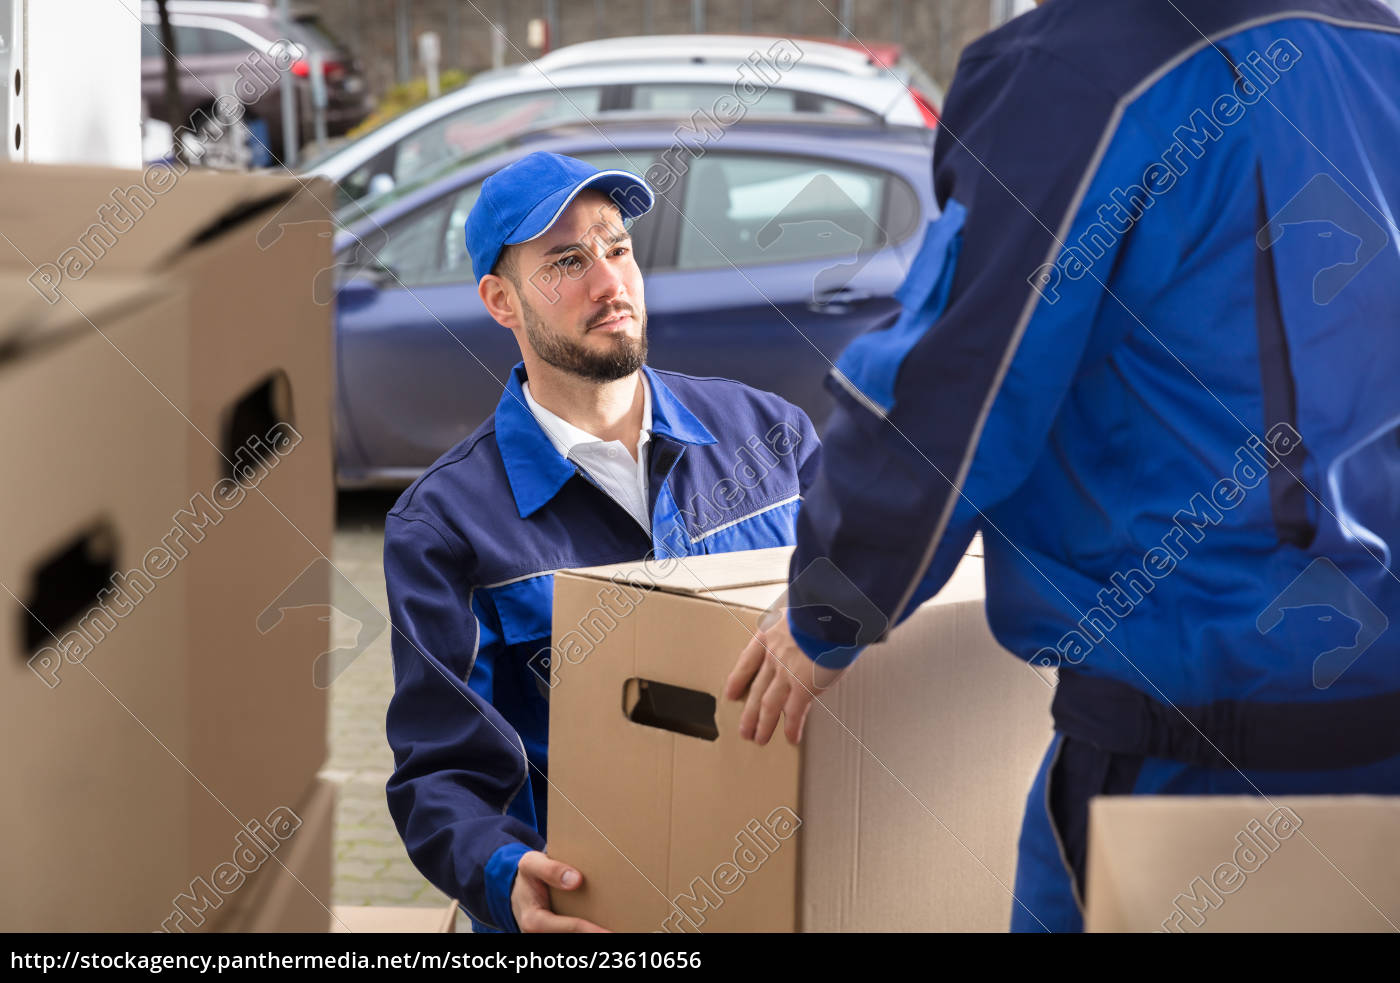 mover, holding, cardboard, box - 23610656